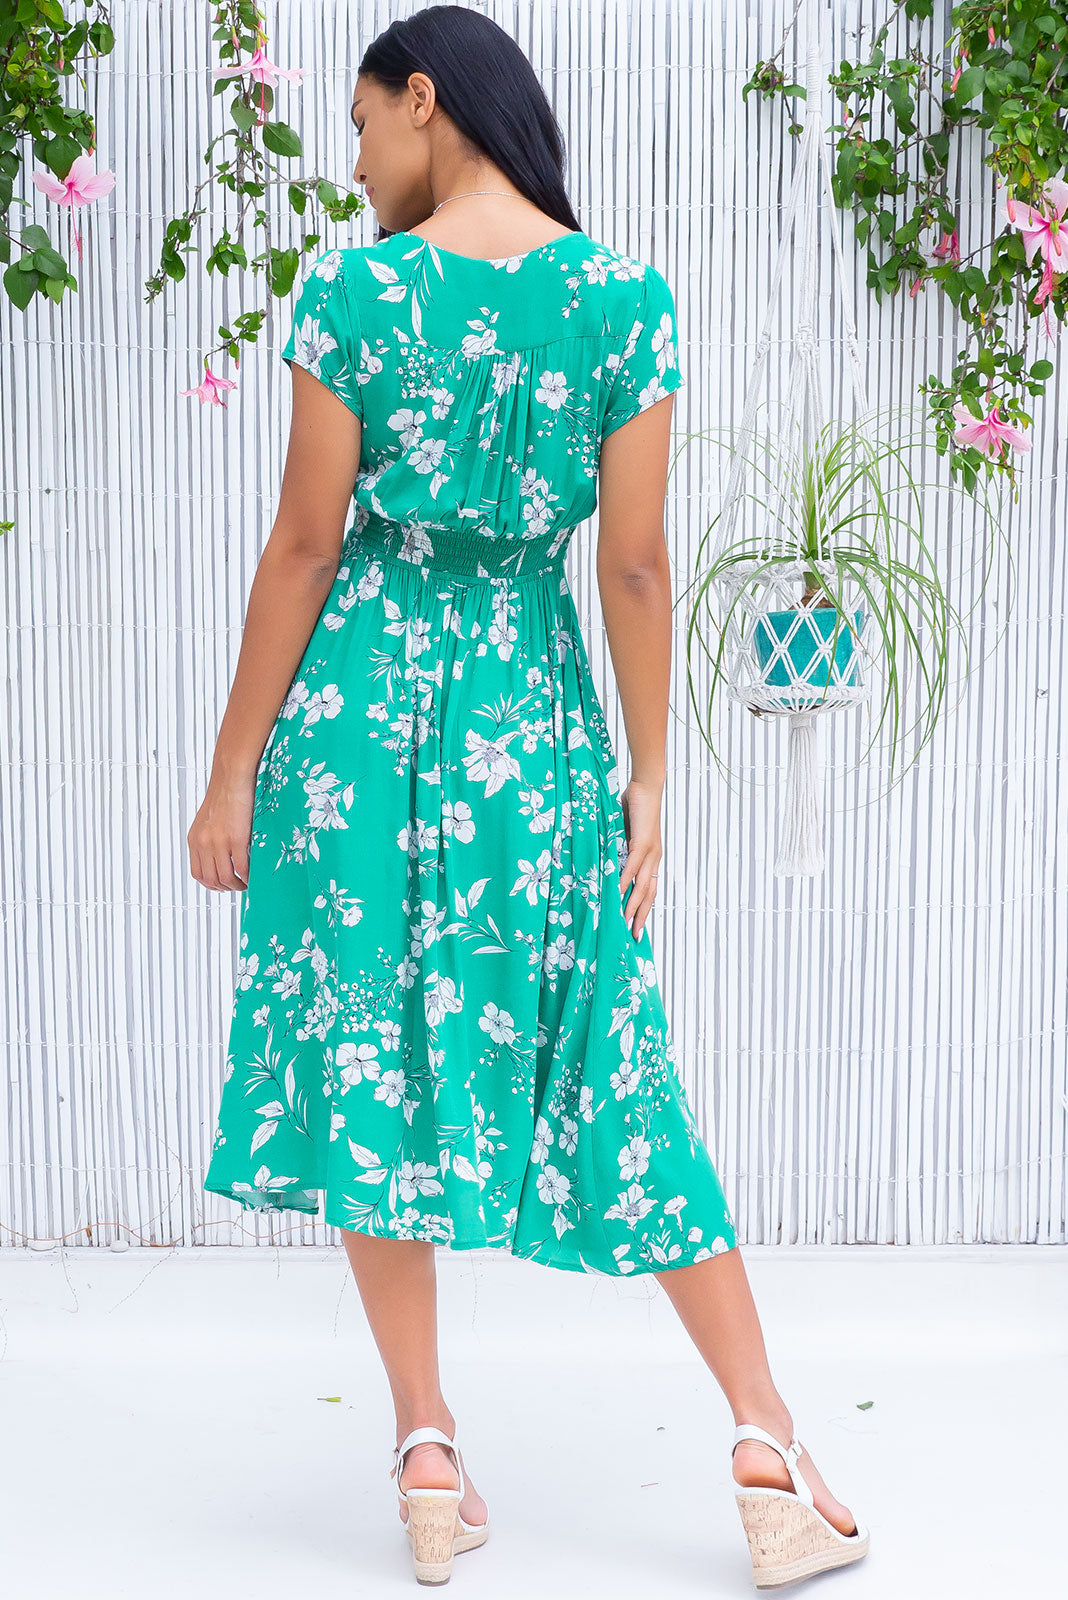 The Lizzie Mono Meadow Dress features fitted basque waist with gathered bust, waist features elastic shirring at back, petite side pockets and 100% rayon in soft, shamrock green base with white floral print.